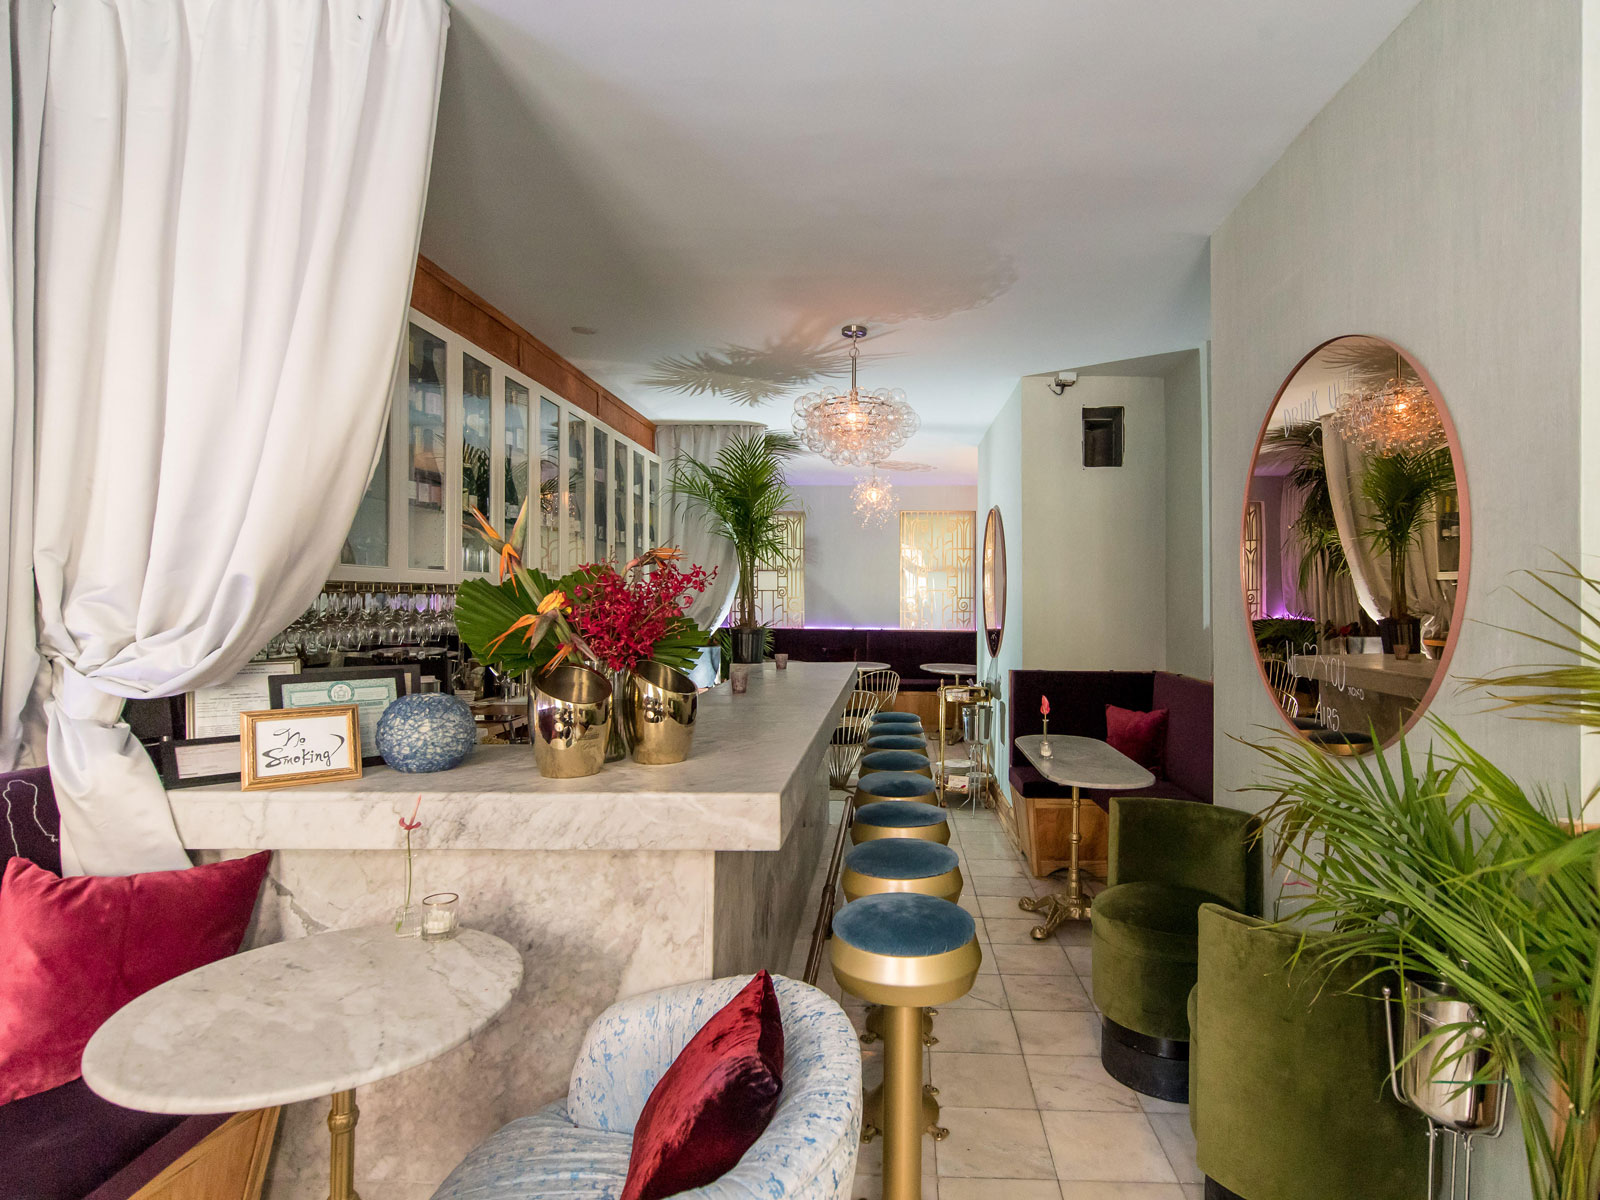 You Need to Visit This Champagne Bar's Bathroom